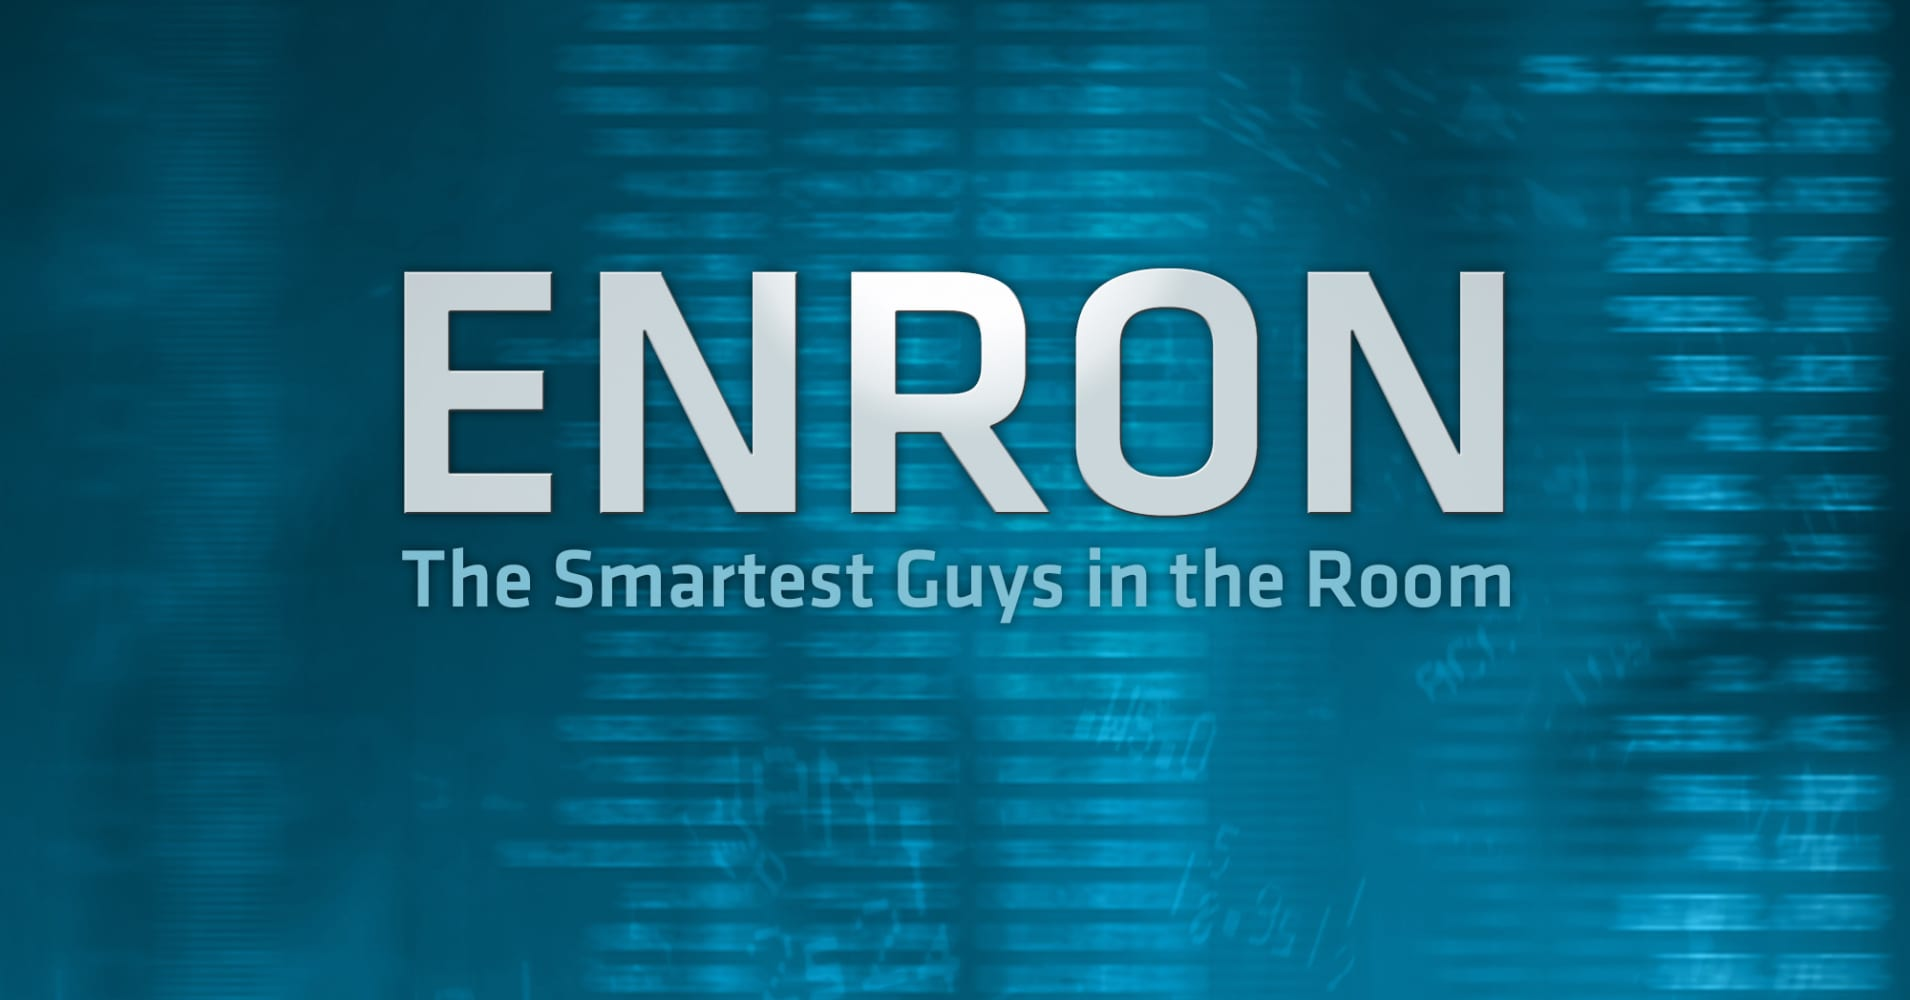 enron the smartest guys in the room free